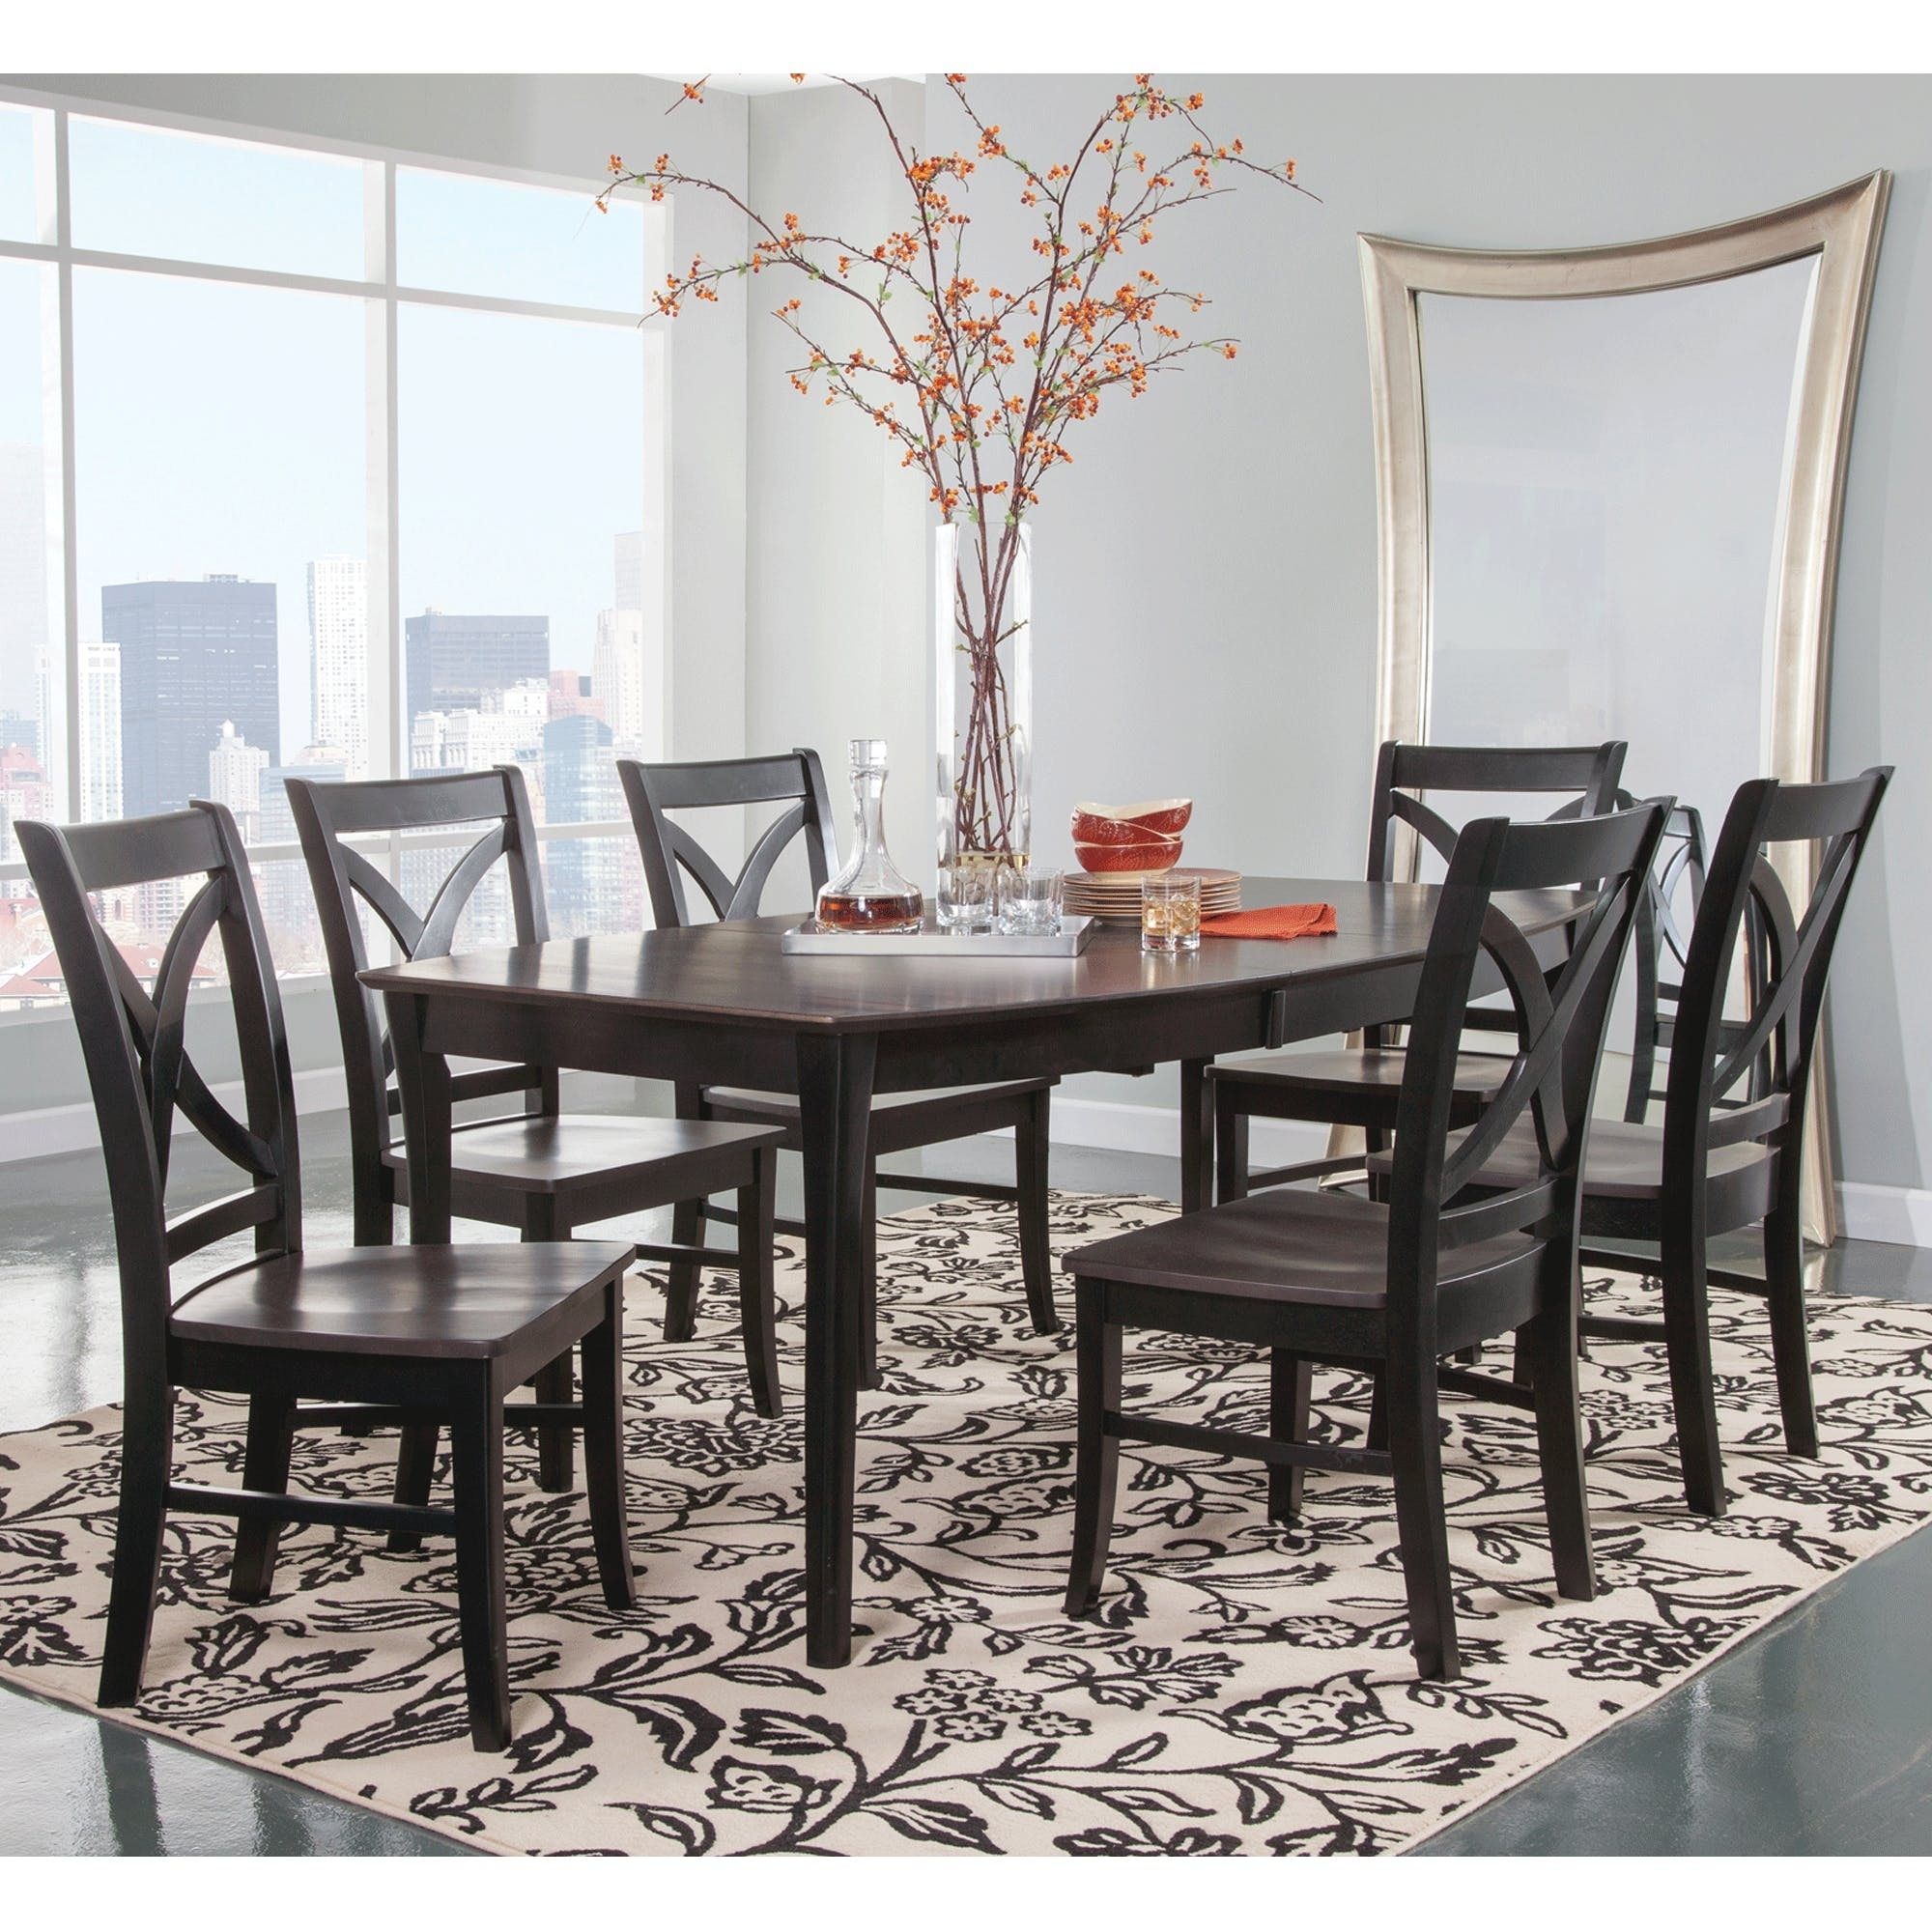 Cosmopolitan Coal/black Dining Room 7 Piece Set – Butterfly Leaf Leg Throughout Most Recently Released Craftsman 7 Piece Rectangle Extension Dining Sets With Side Chairs (View 2 of 20)